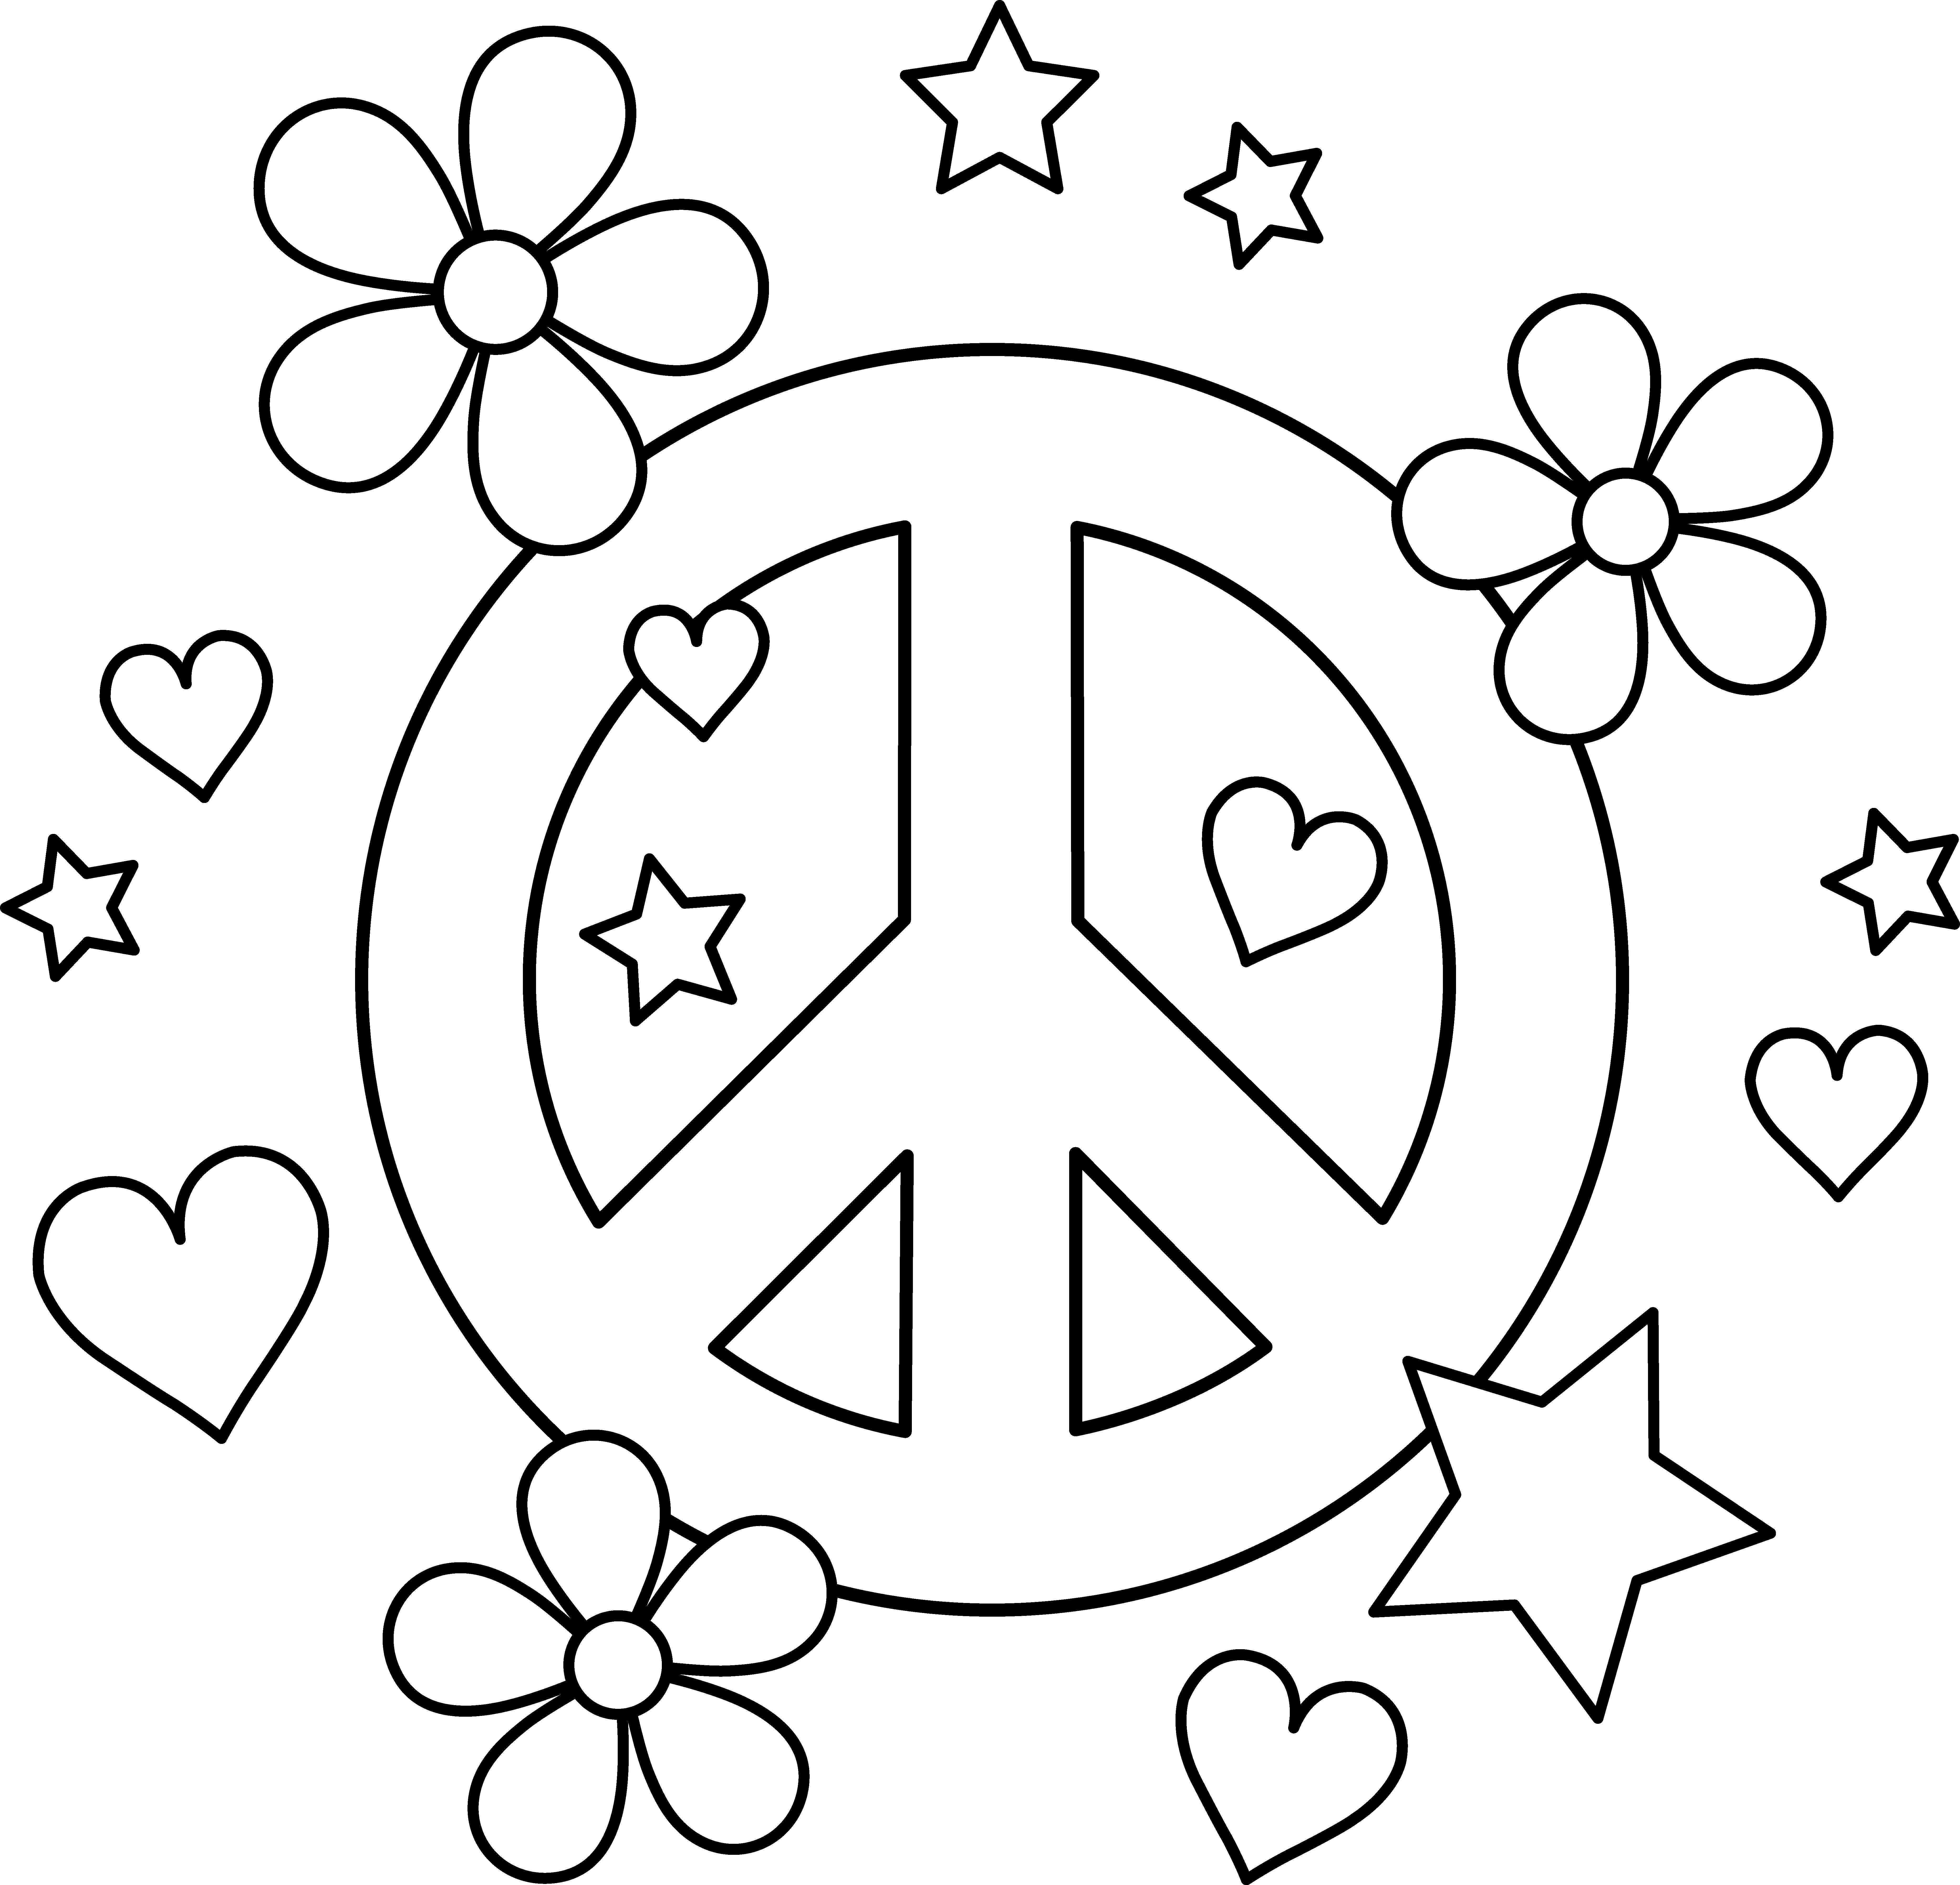 peace sign coloring page coloring pages of peace signs coloring home peace day sign peace page coloring